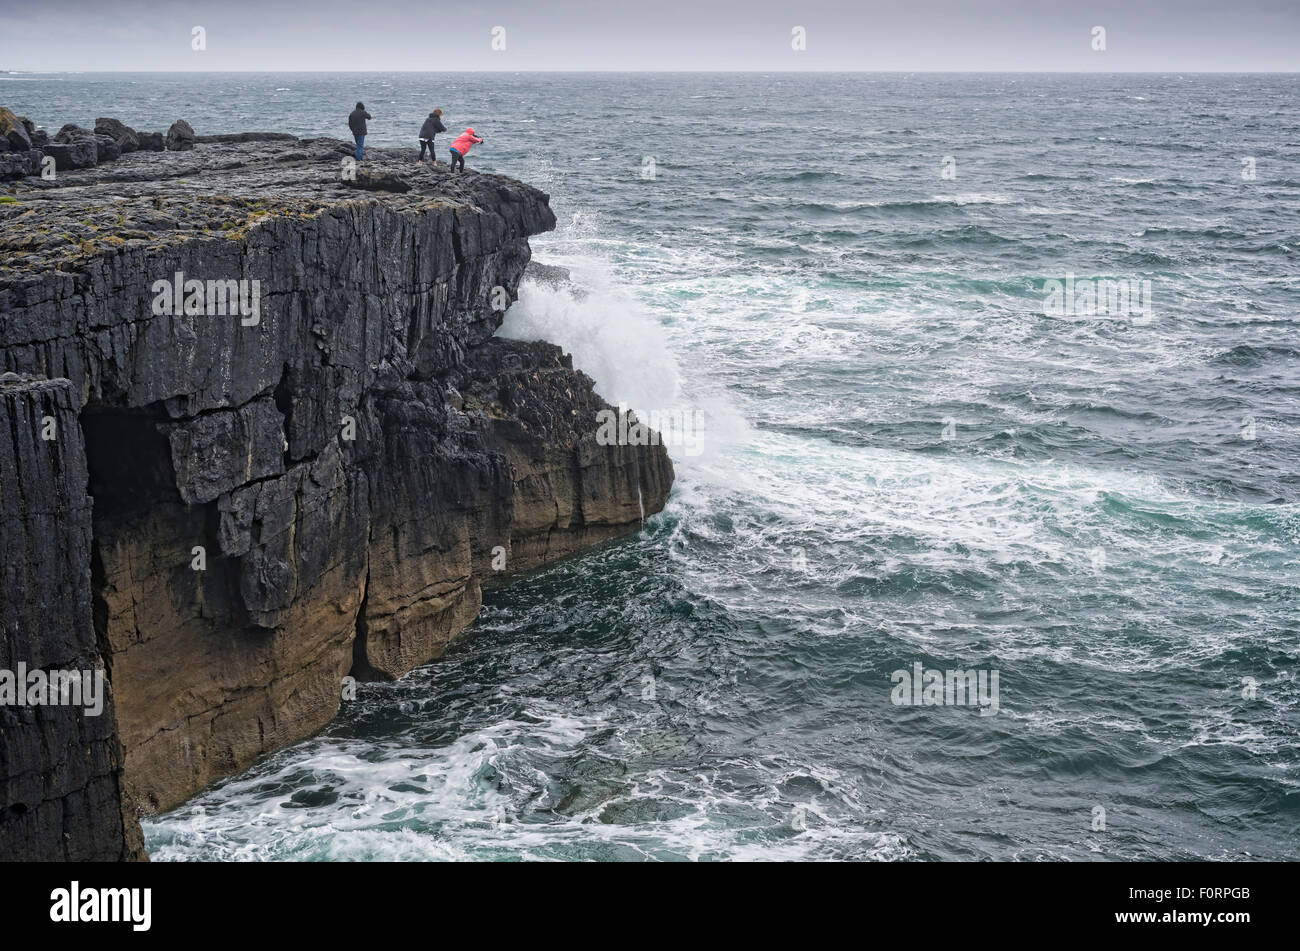 People taking photos of waves hitting cliffs at The burren, Co. Clare, Ireland - Stock Image